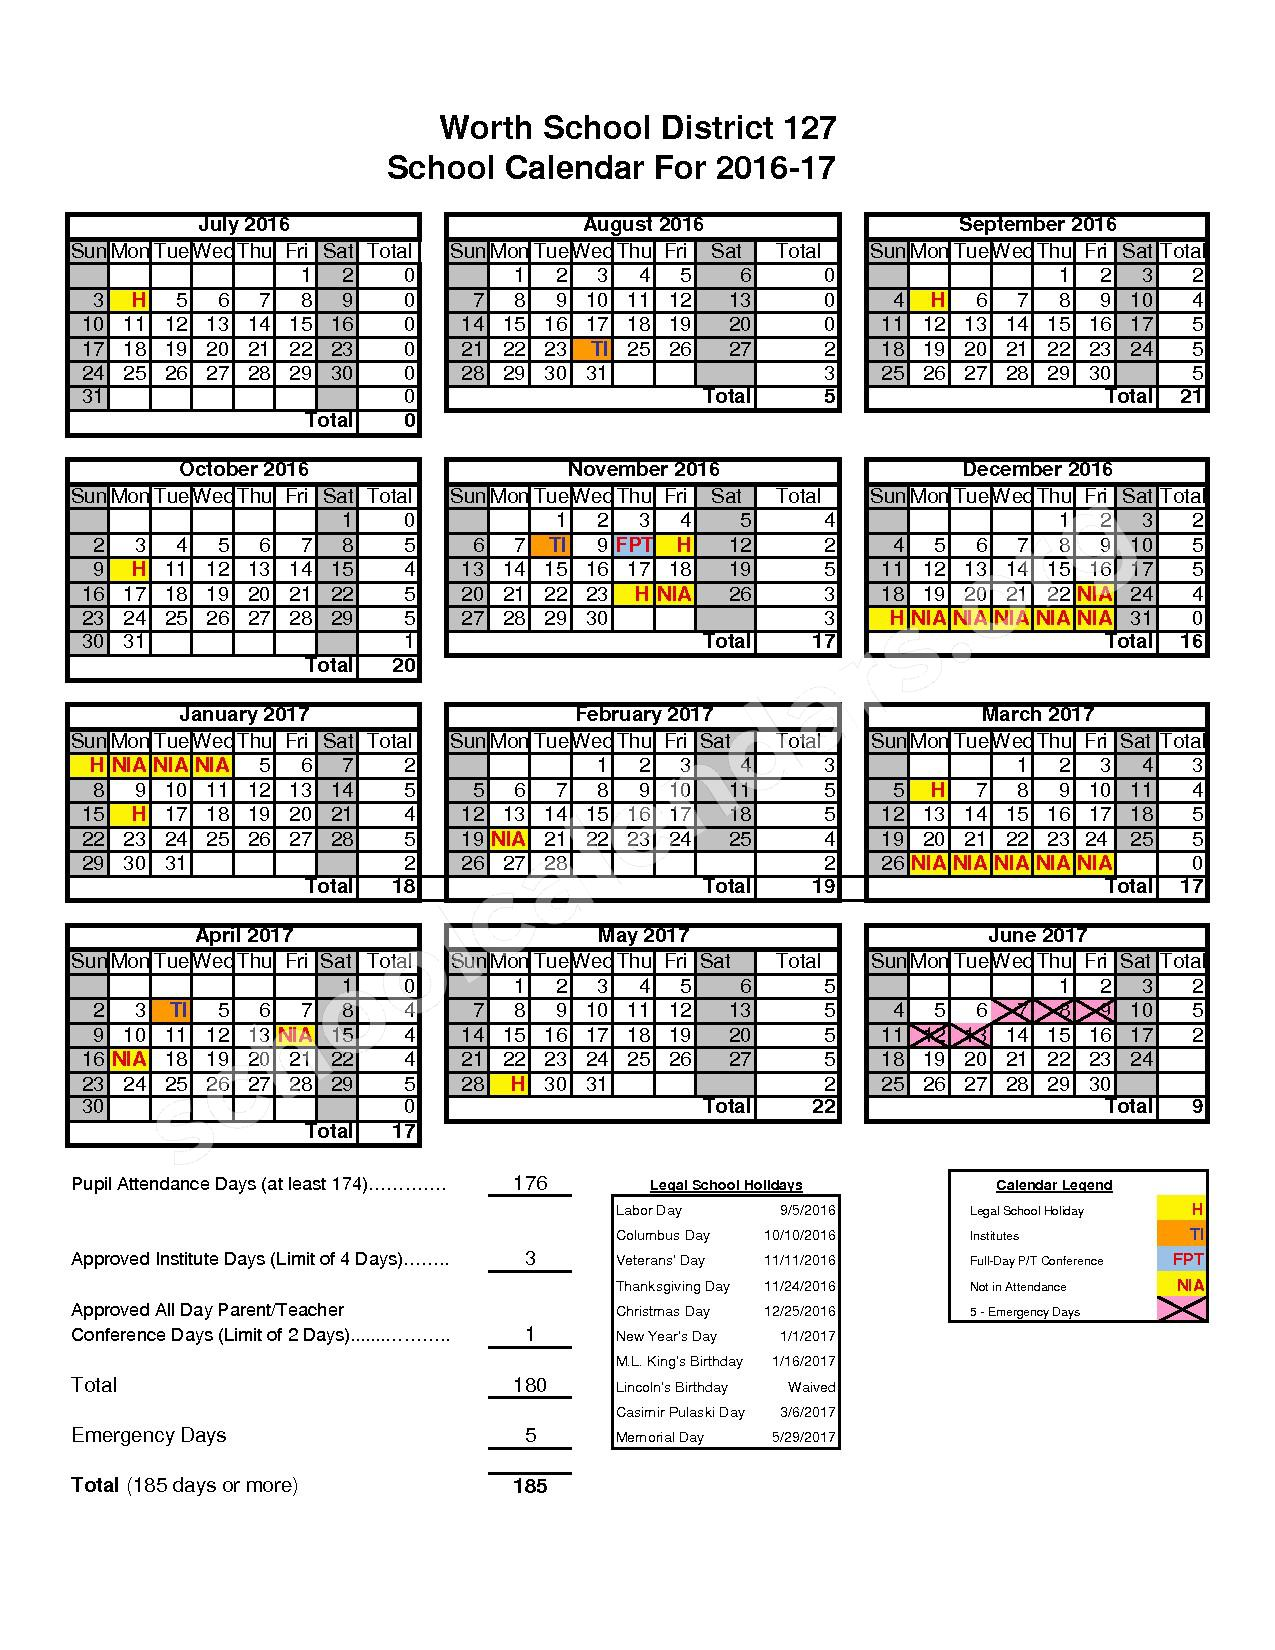 2016 - 2017 School Calendar – Worth School District 127 – page 1